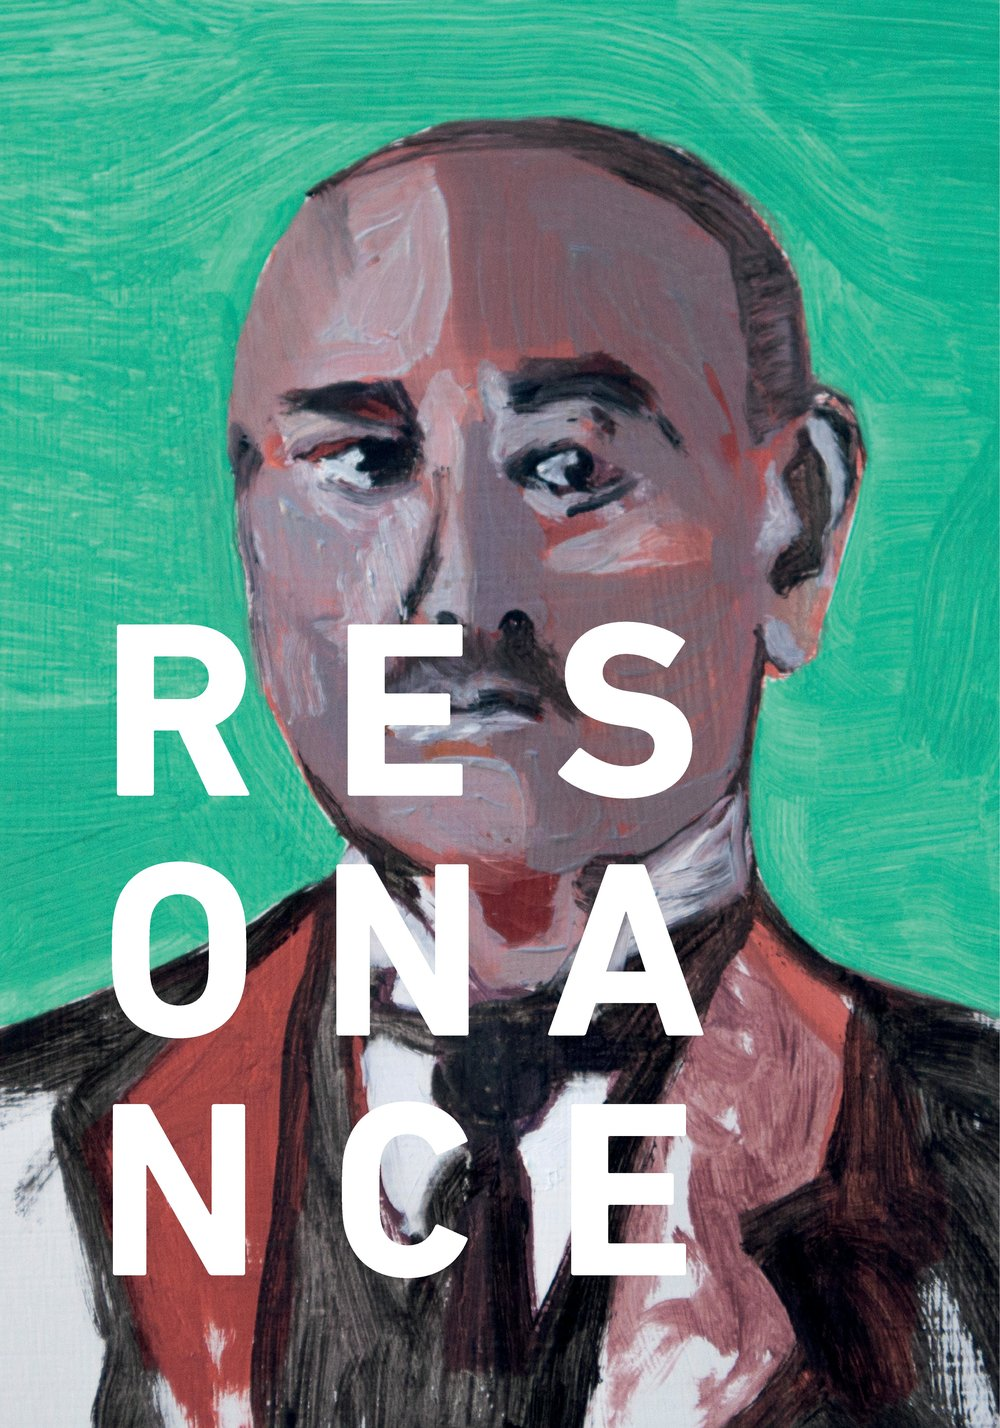 Resonance exhibition catalogue cover